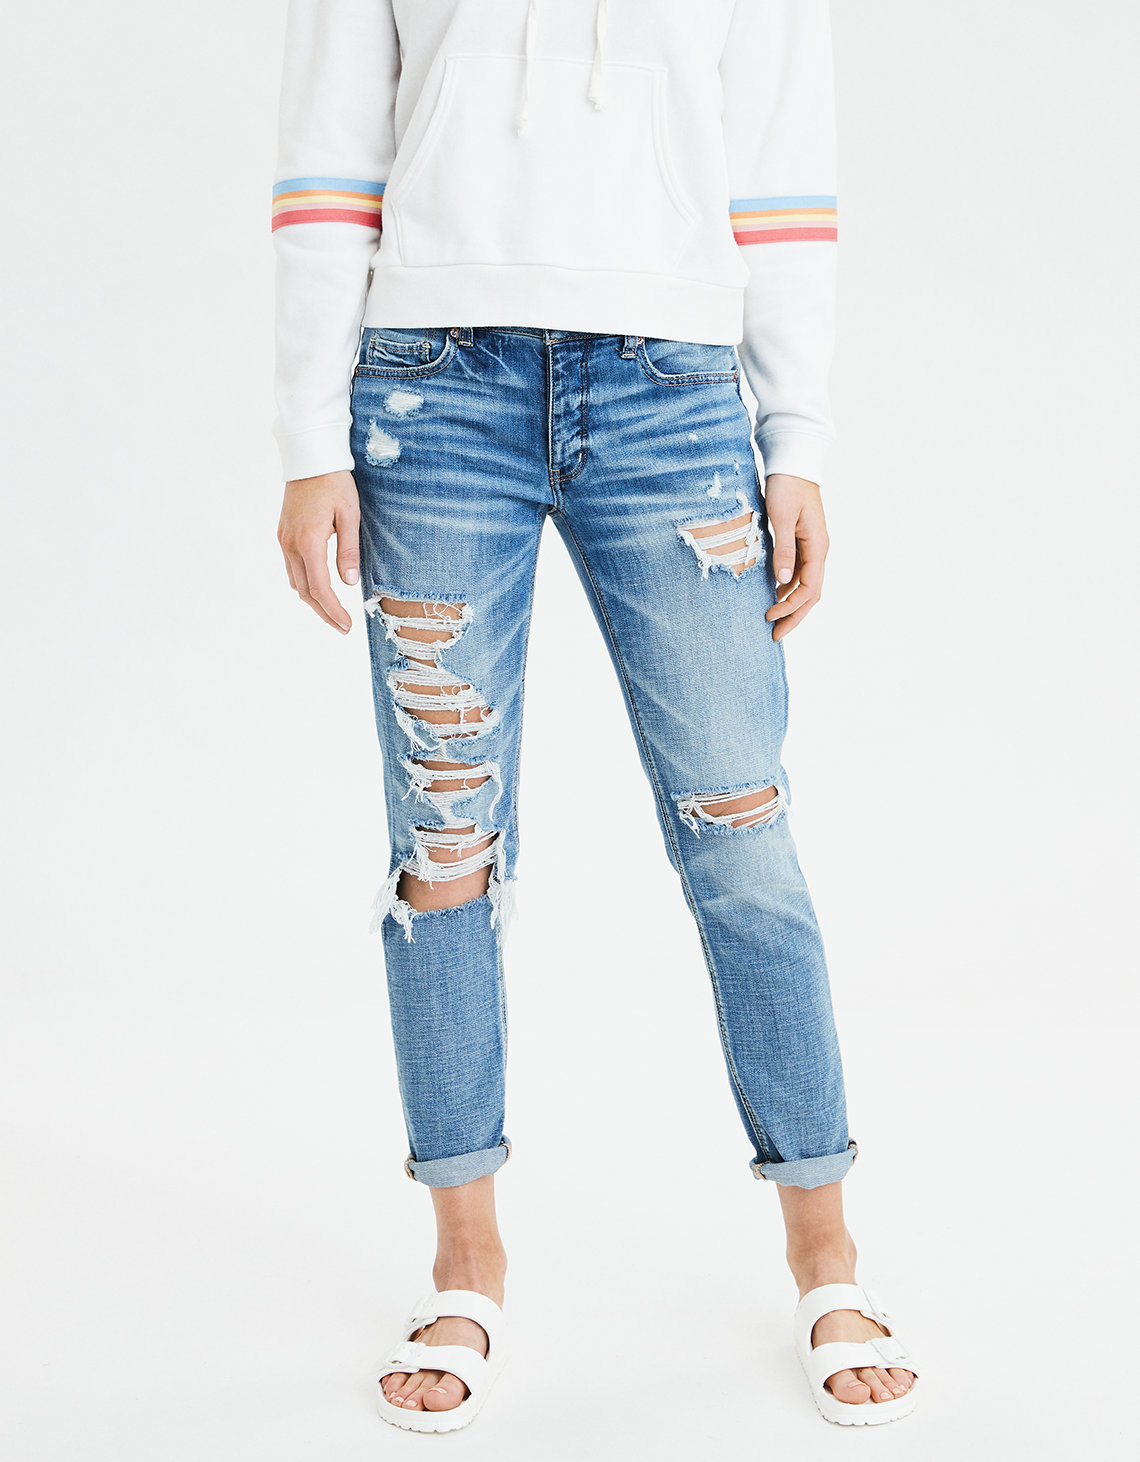 e042a3a756 Tomgirl Jean. Placeholder image. Product Image